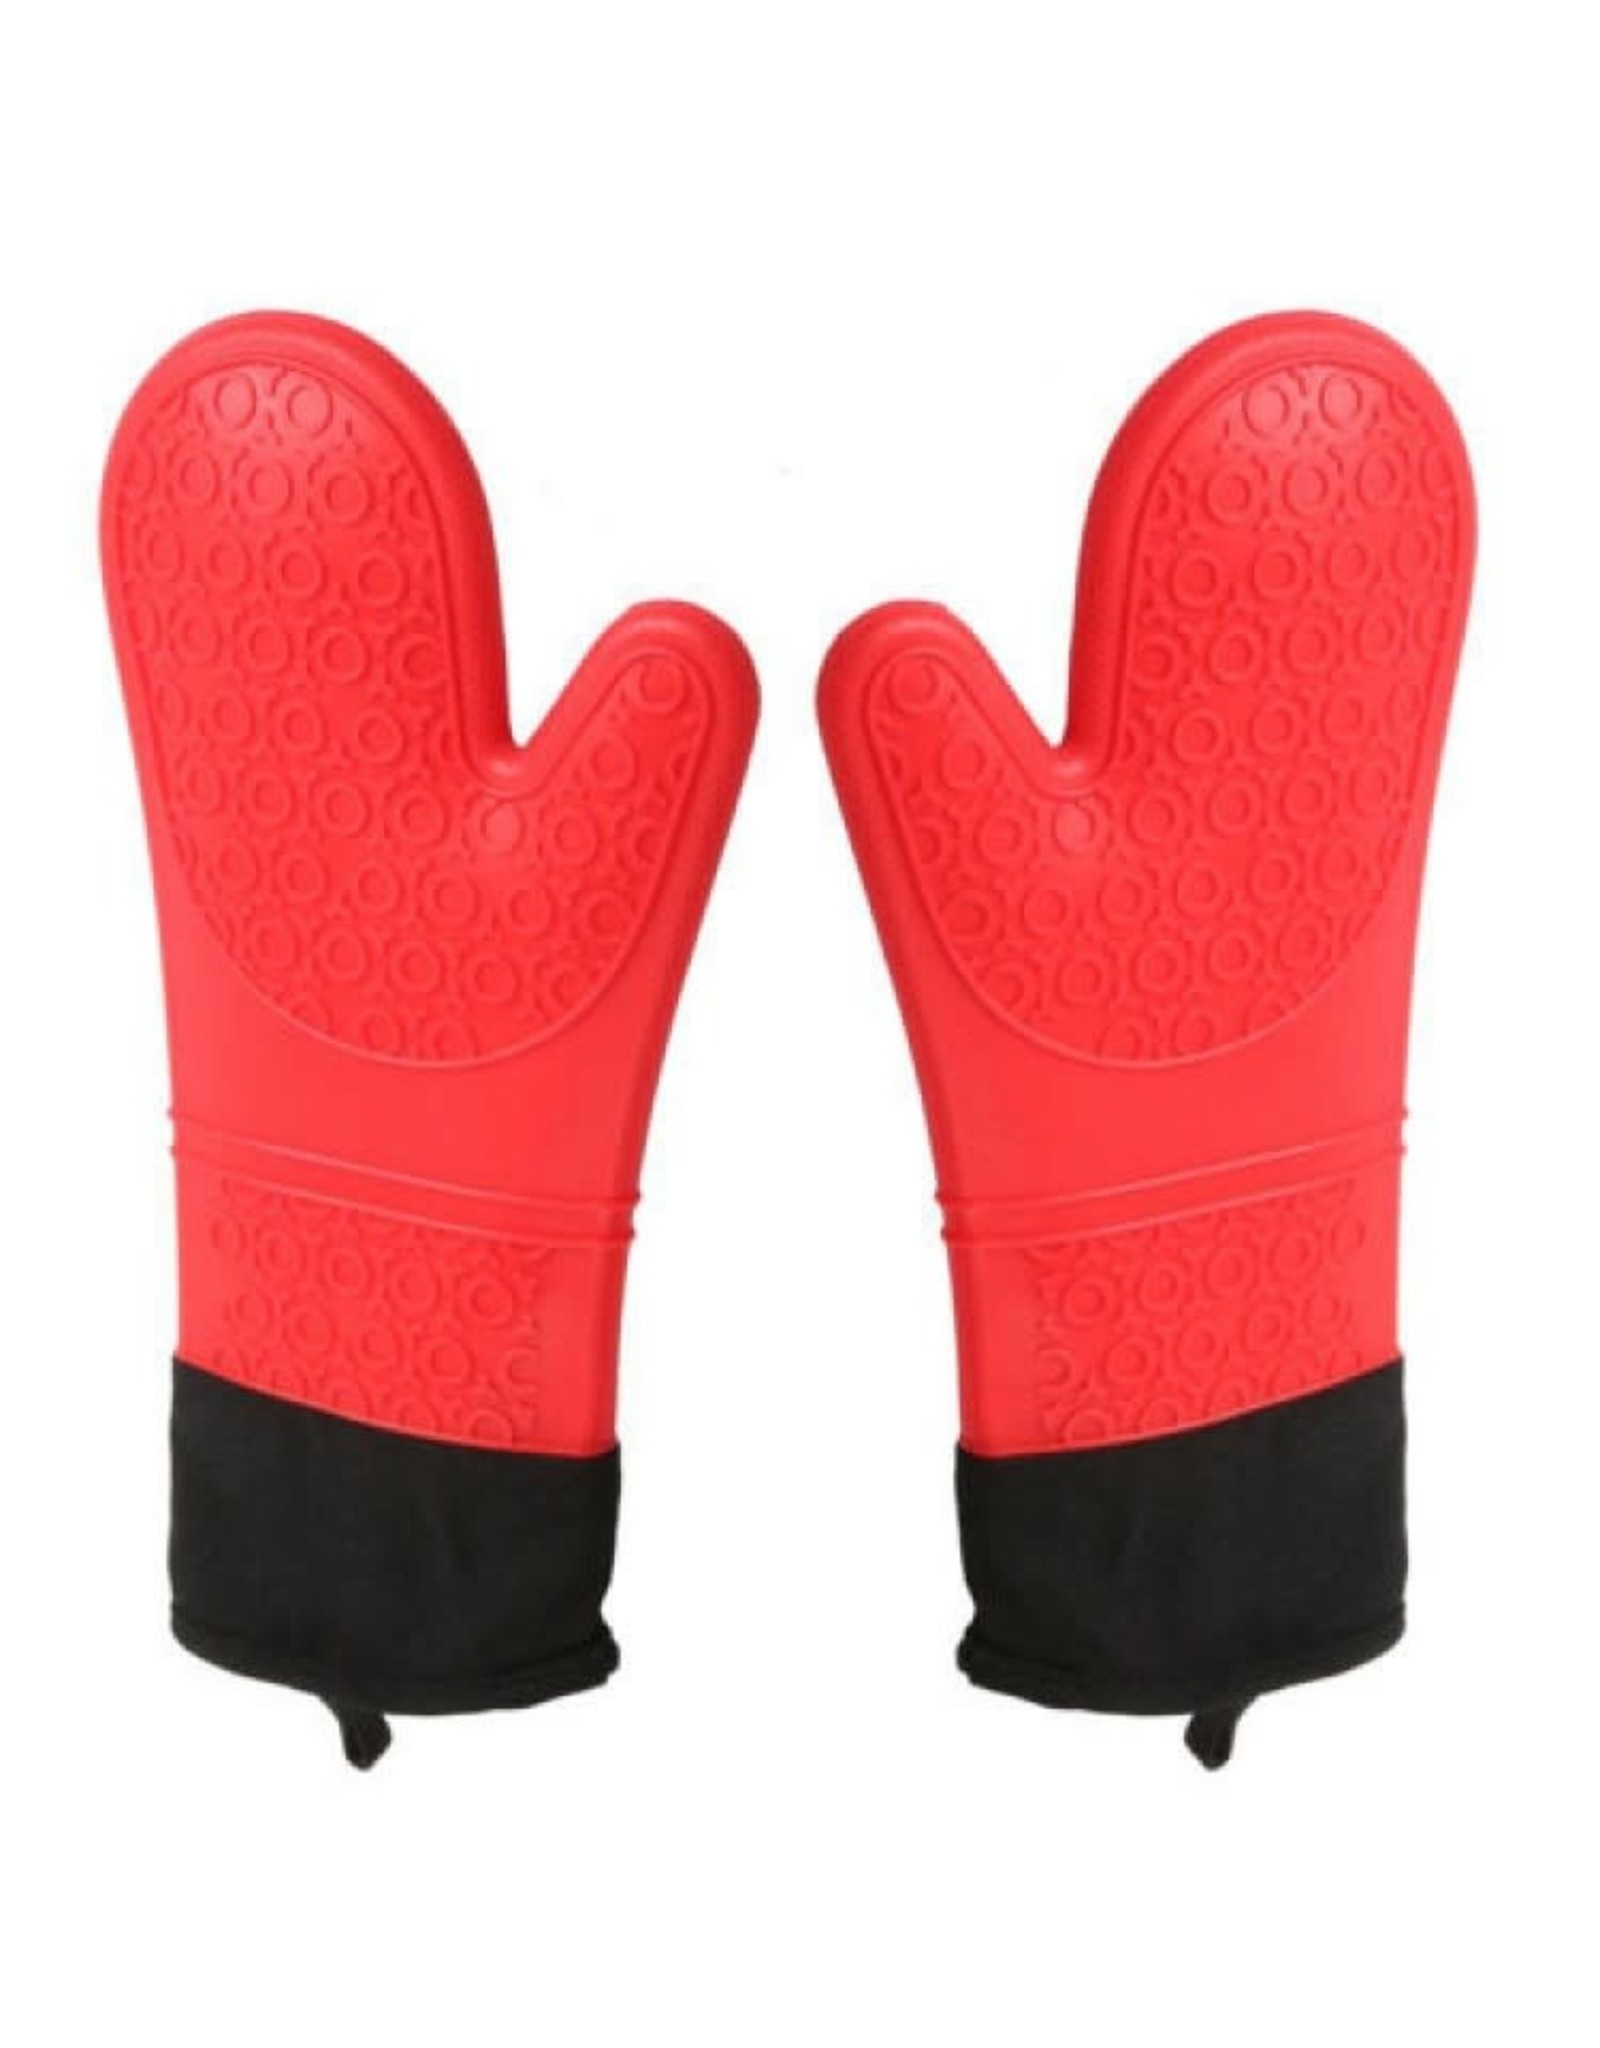 Cool Touch - Silicone Oven Mitt - 13 in, Red, CP,12